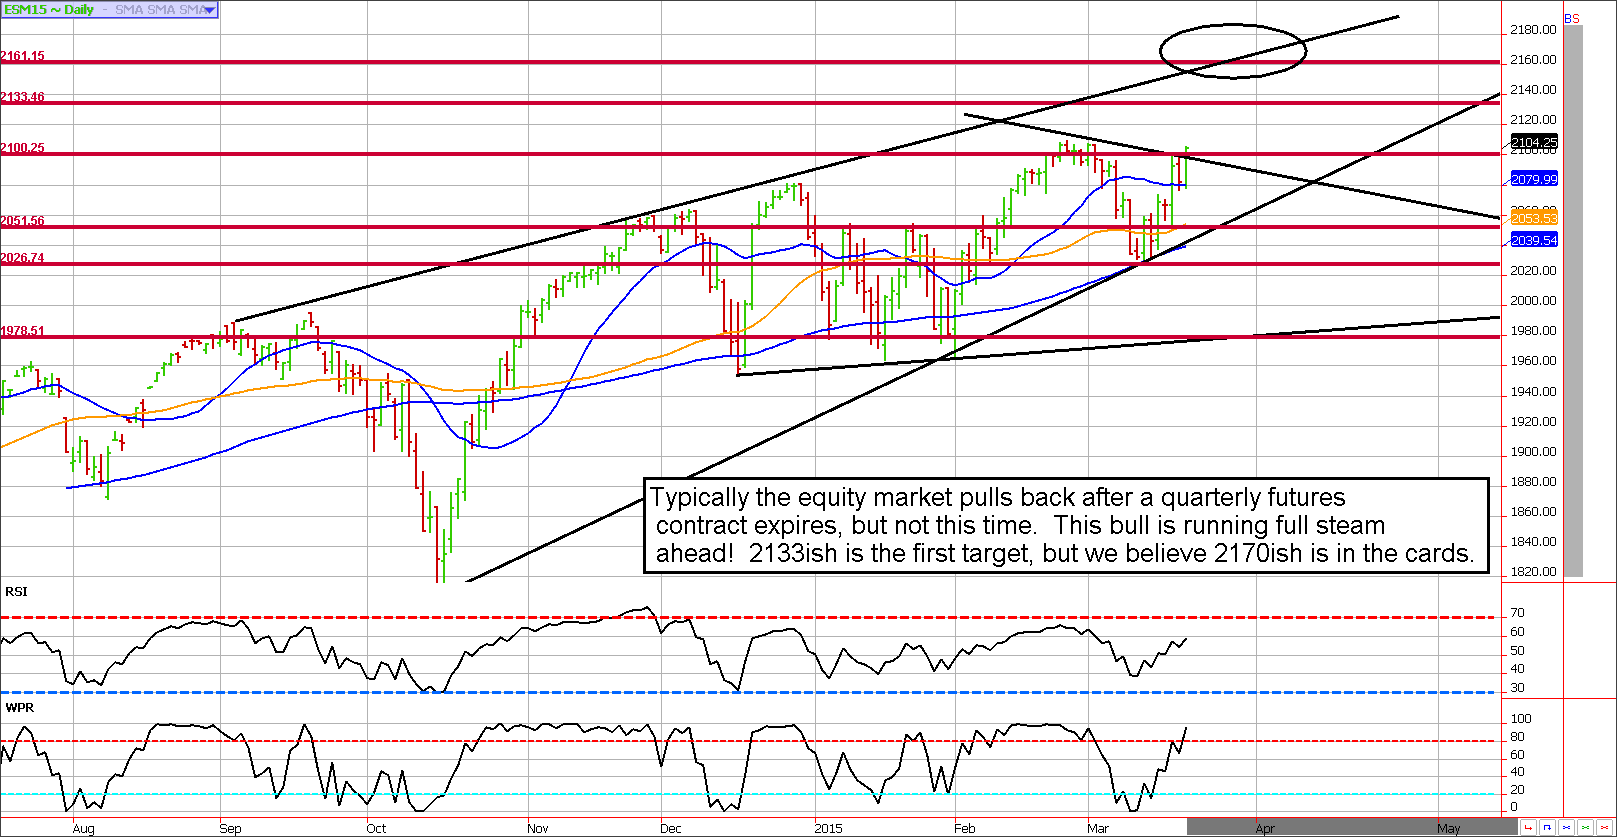 S&P 500 Chart analysis